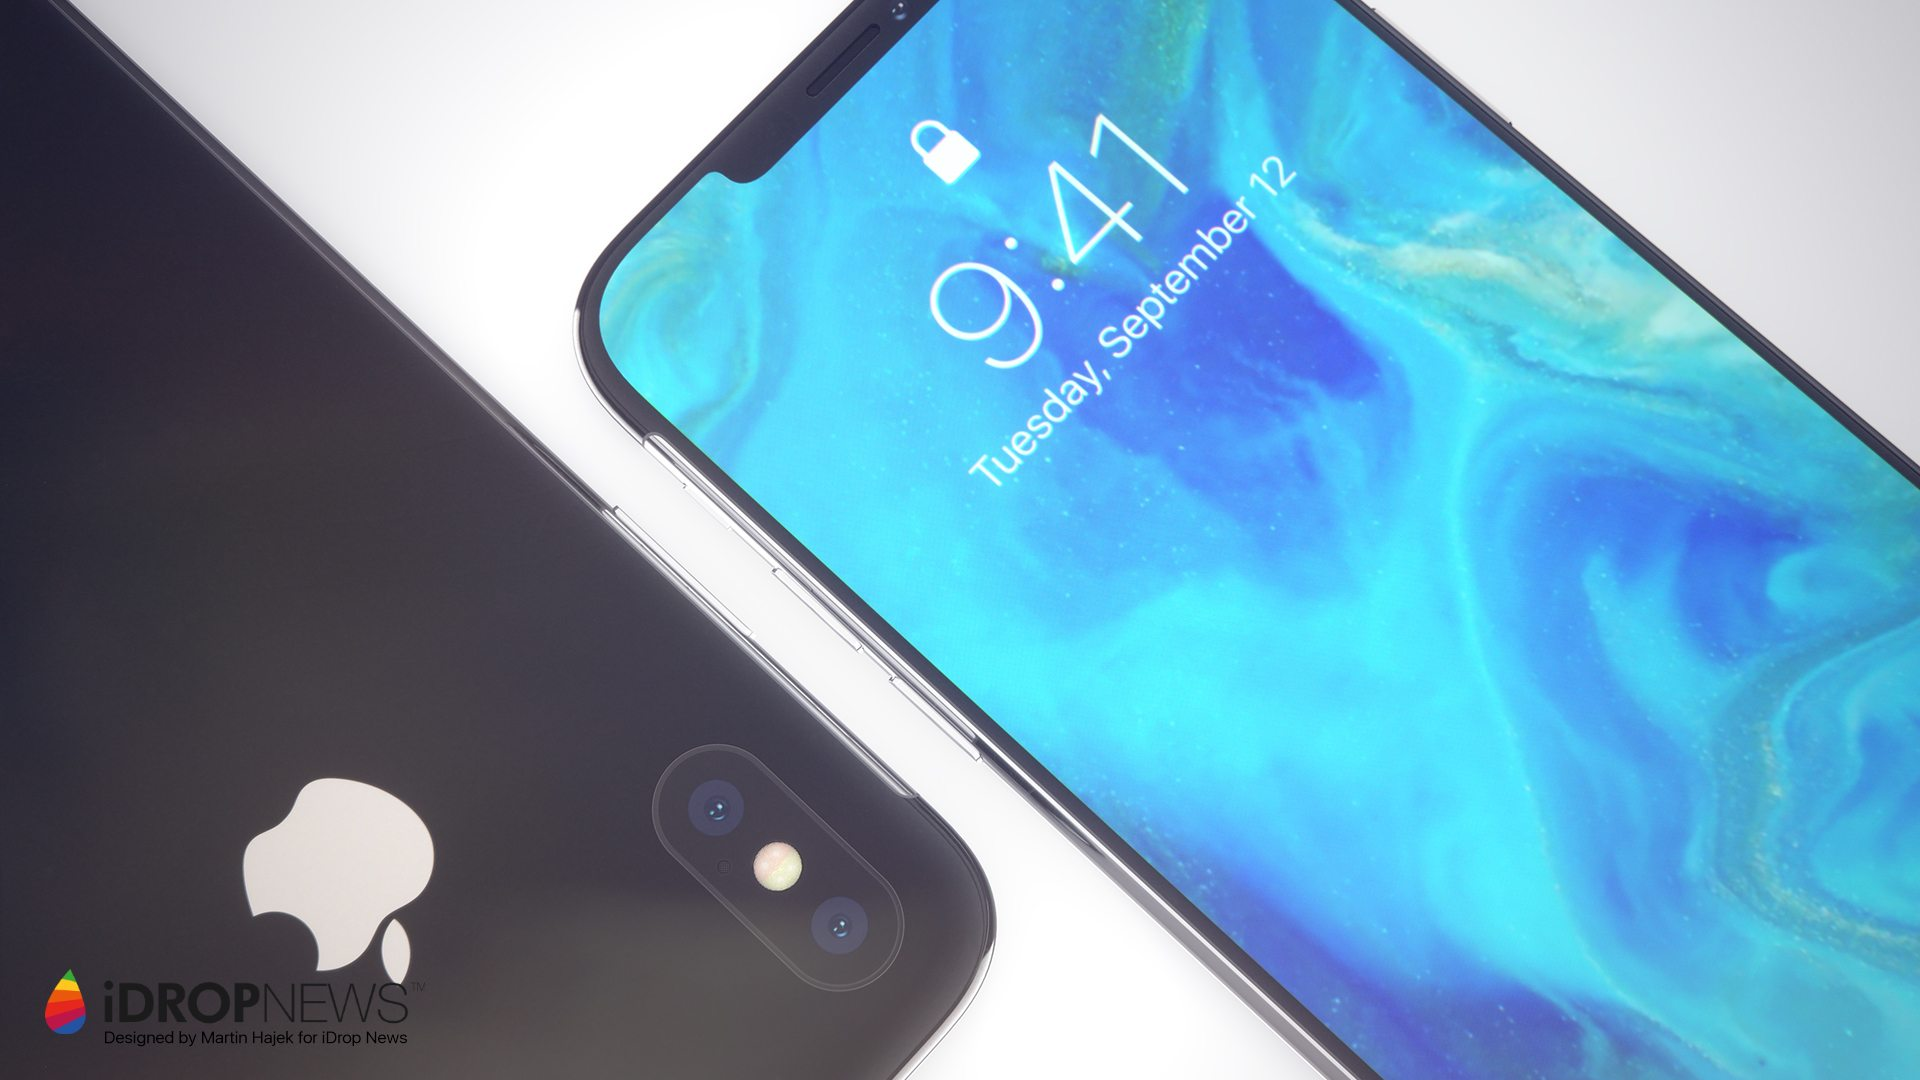 Kuo: Apple May Offer Two 6.1-Inch iPhone Models in 2018 – One Could be Priced as Low as $550